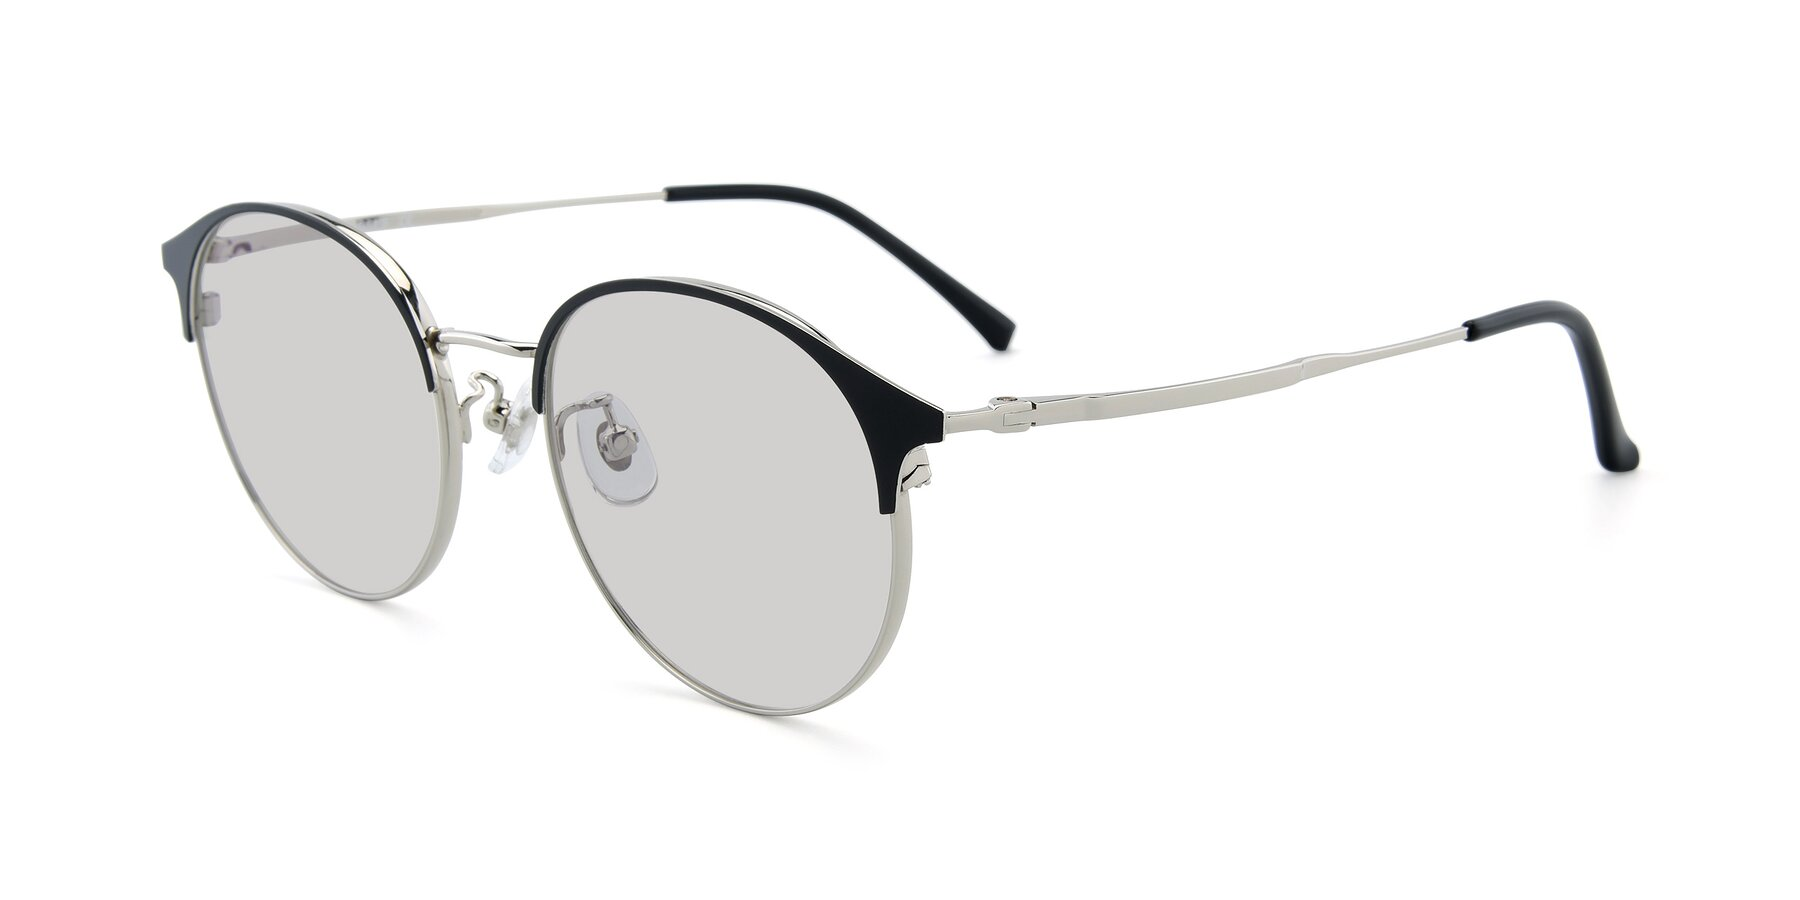 Angle of XC-8031 in Black-Silver with Light Gray Tinted Lenses